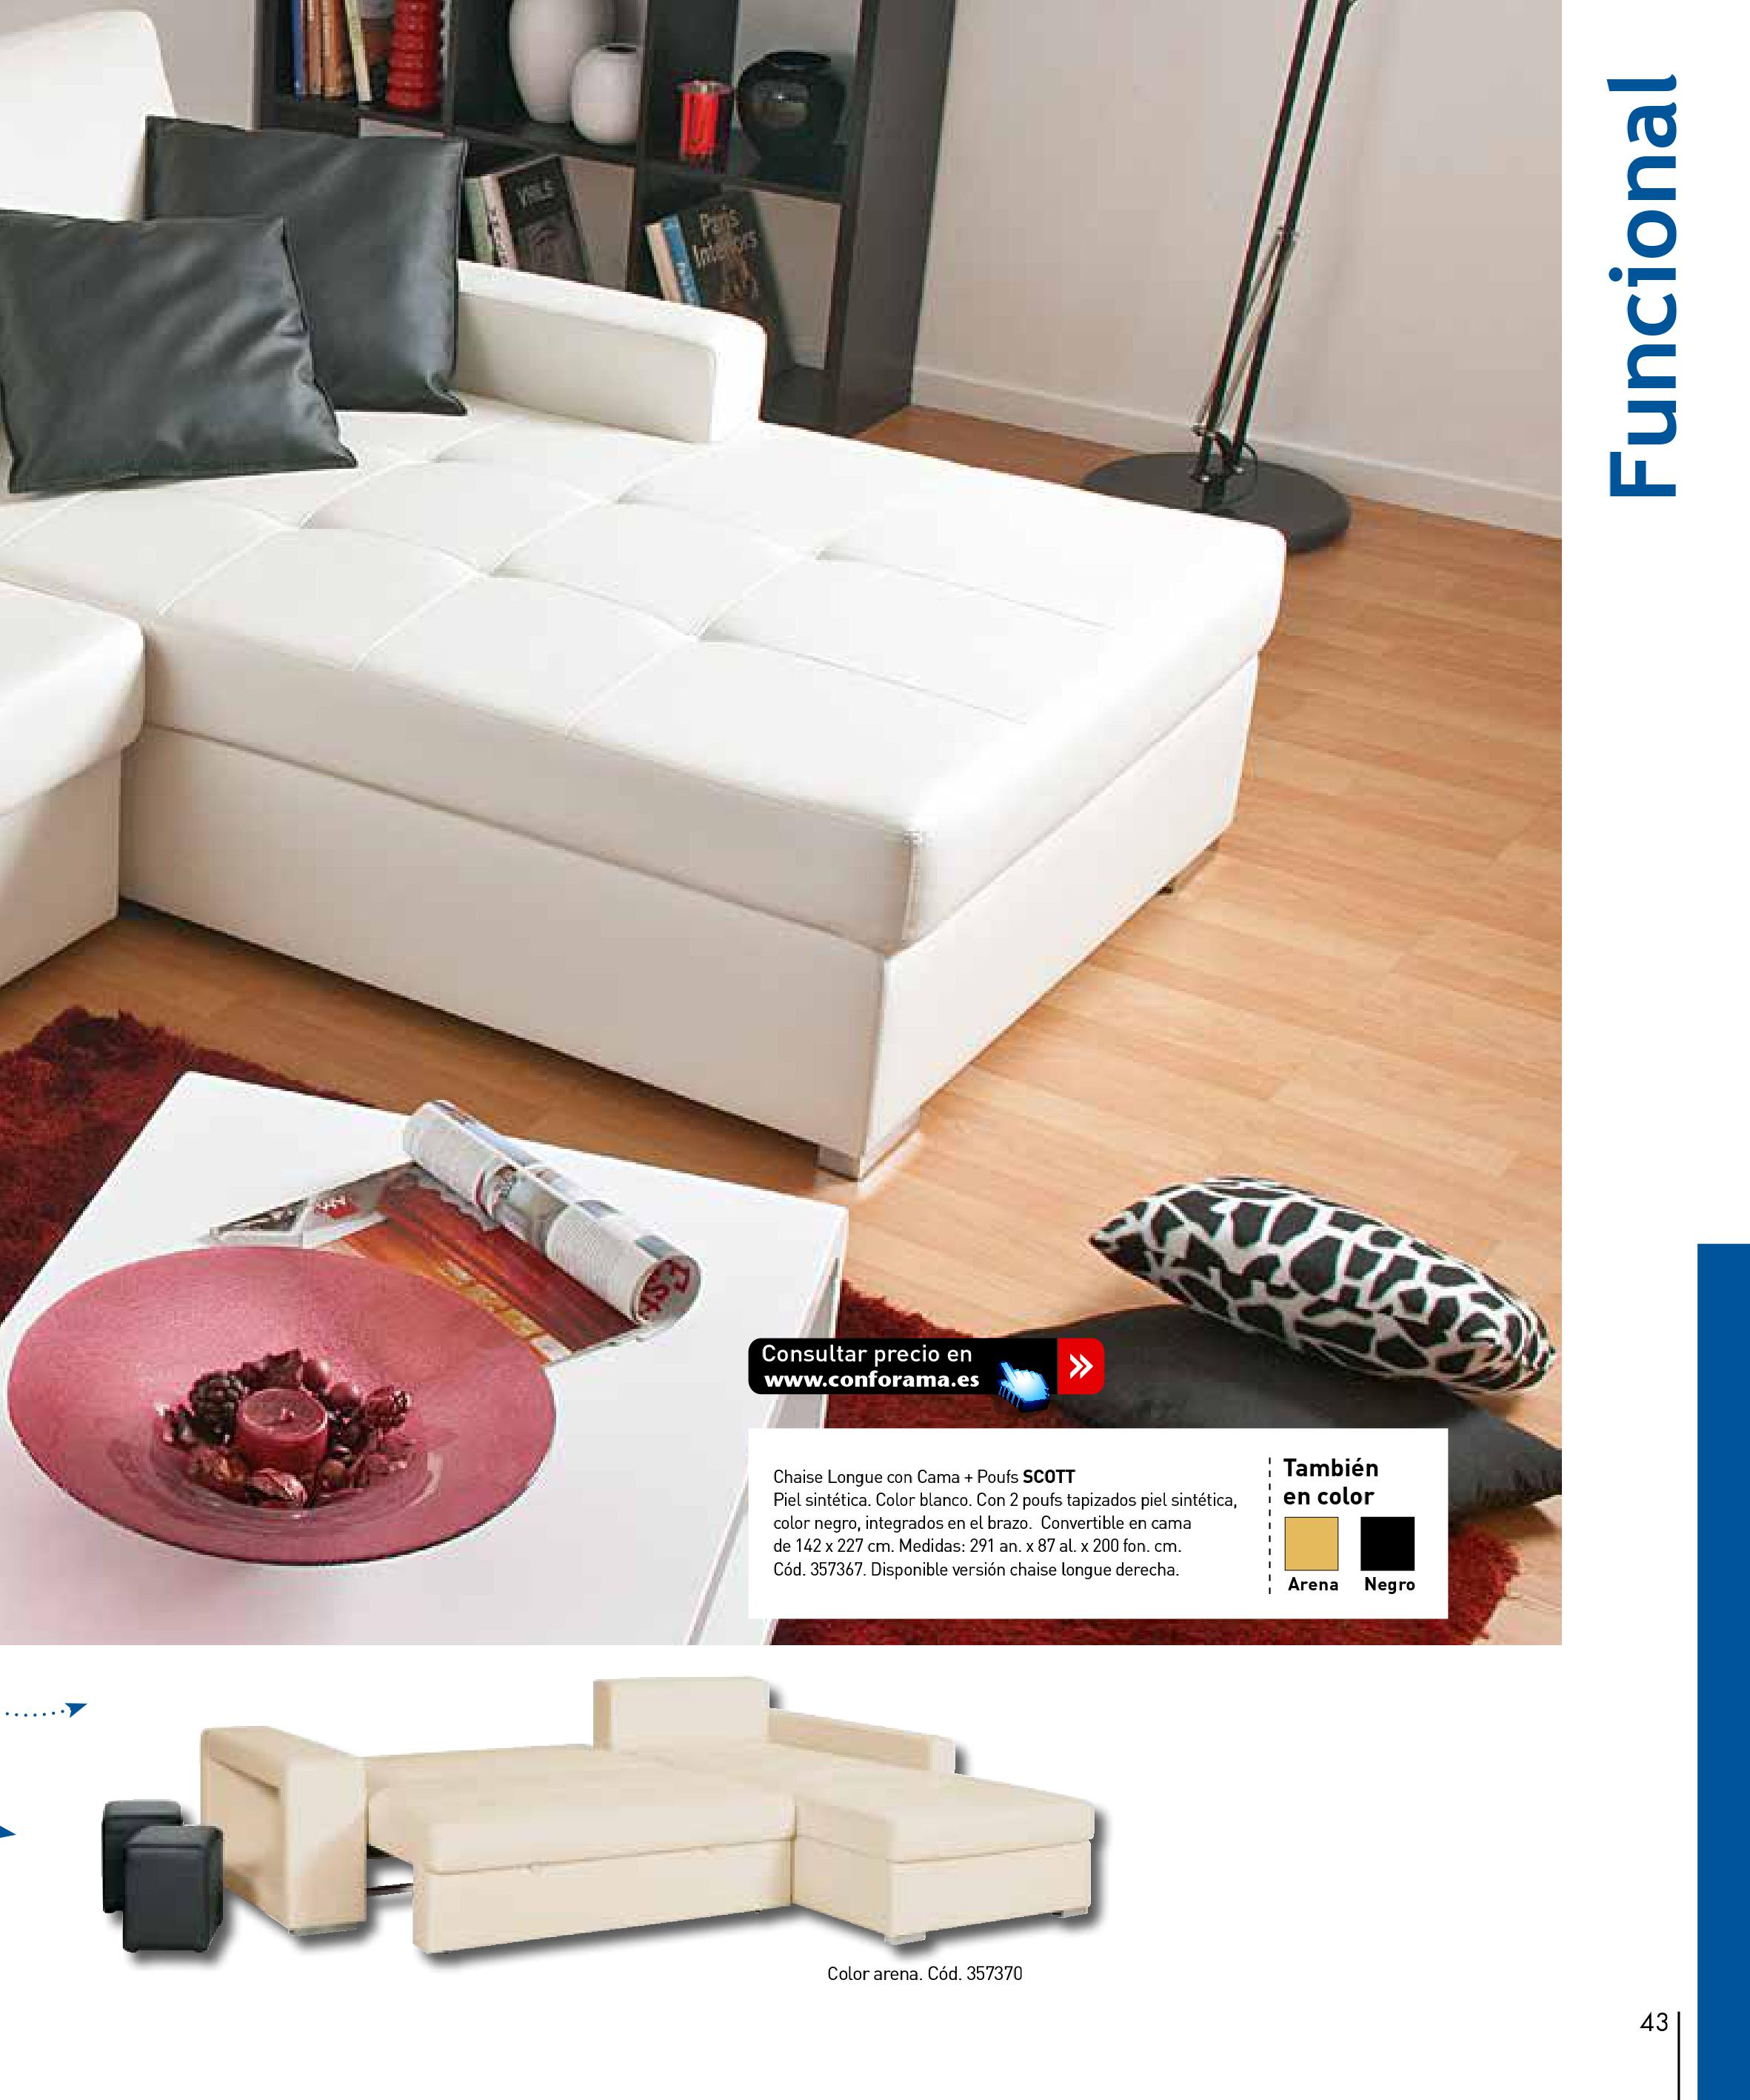 Sofas conforama 201543 for Sofas conforama catalogo